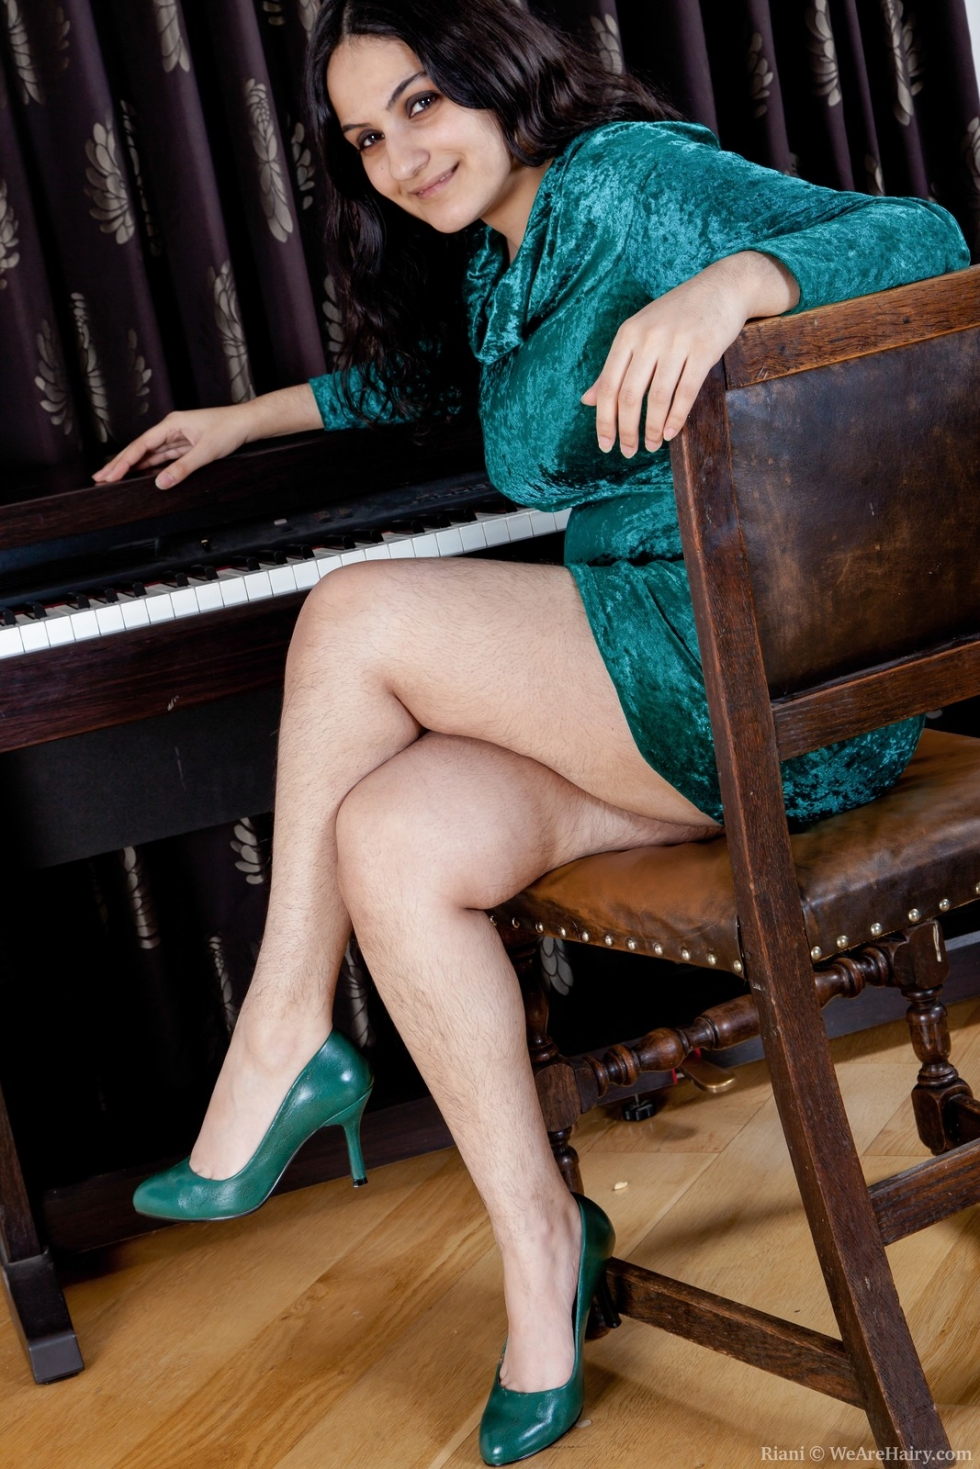 Piano lessons for bbw 362014smyt - 1 part 10